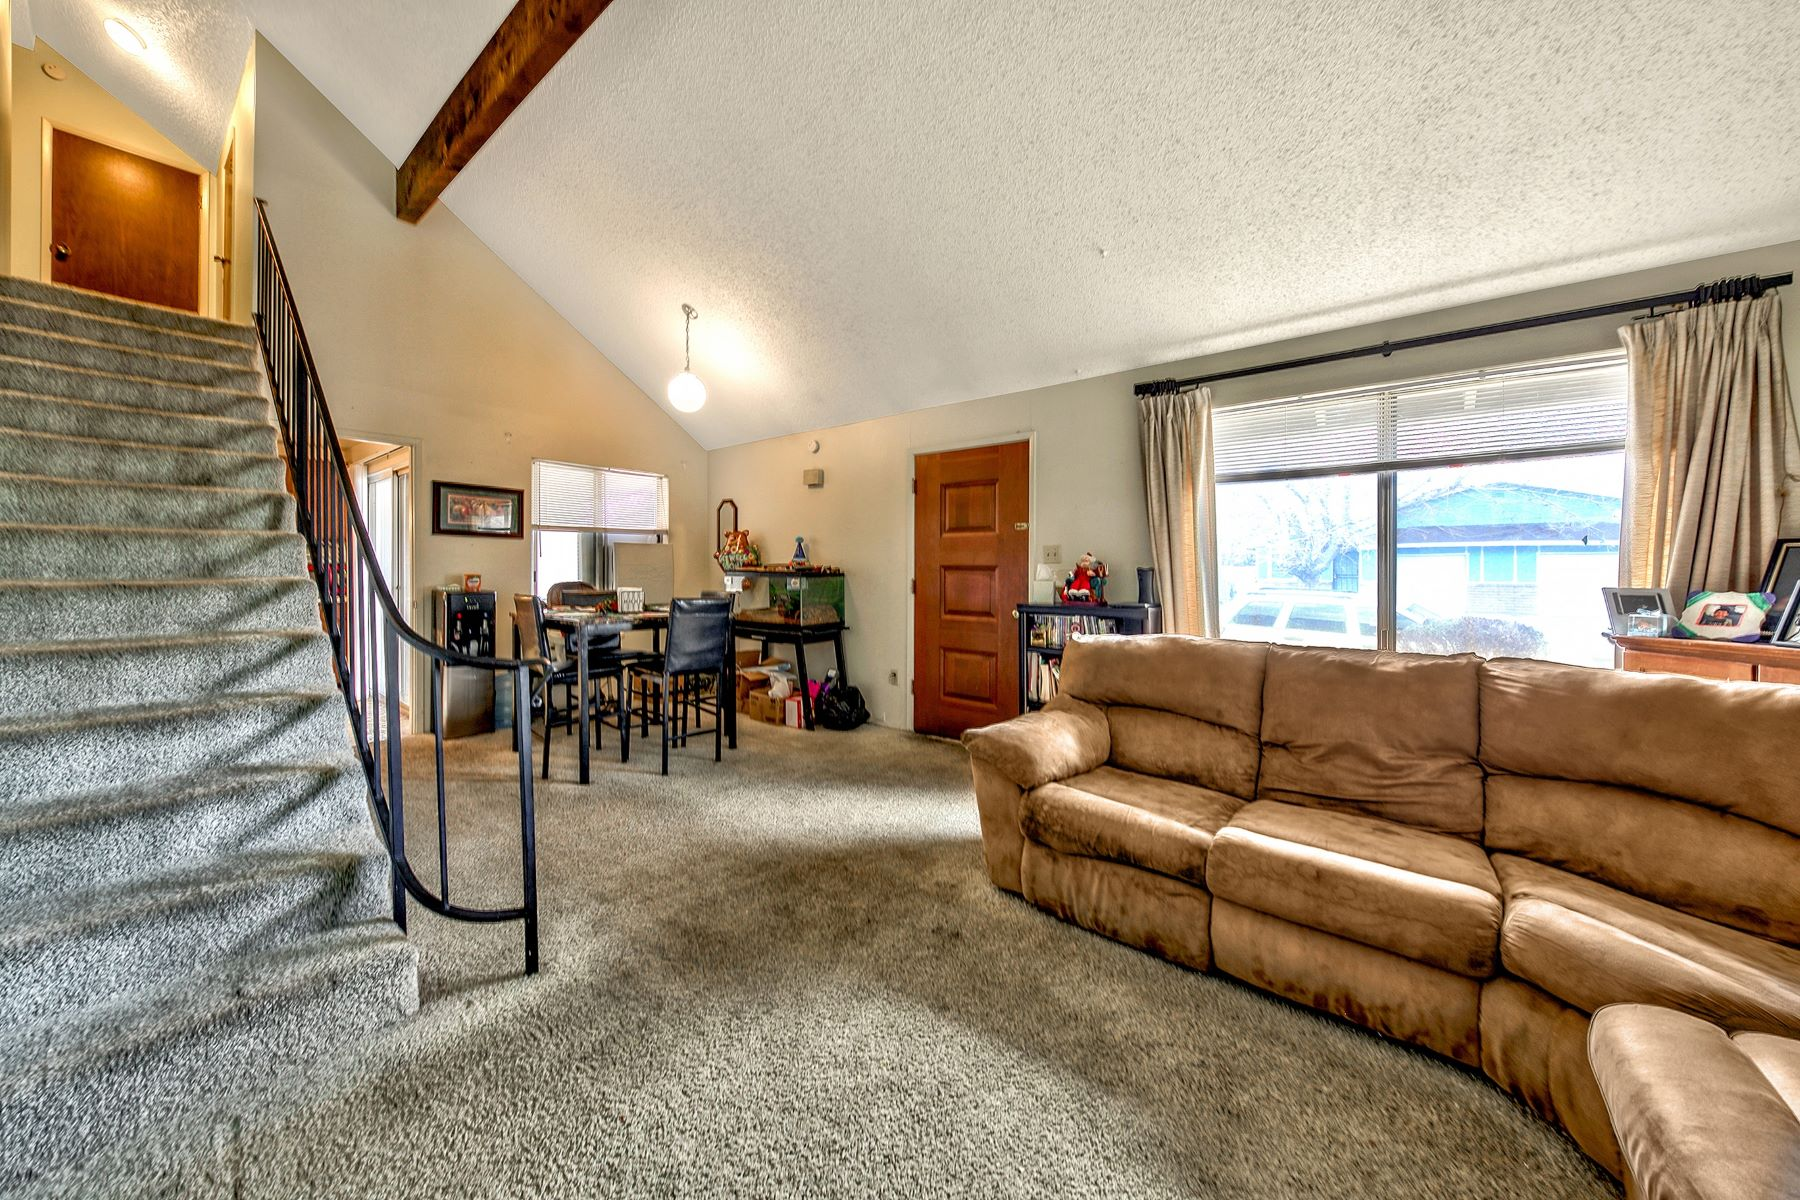 Additional photo for property listing at 1721 York Way, Sparks, NV 89431 1721 York Way Sparks, Nevada 89431 United States